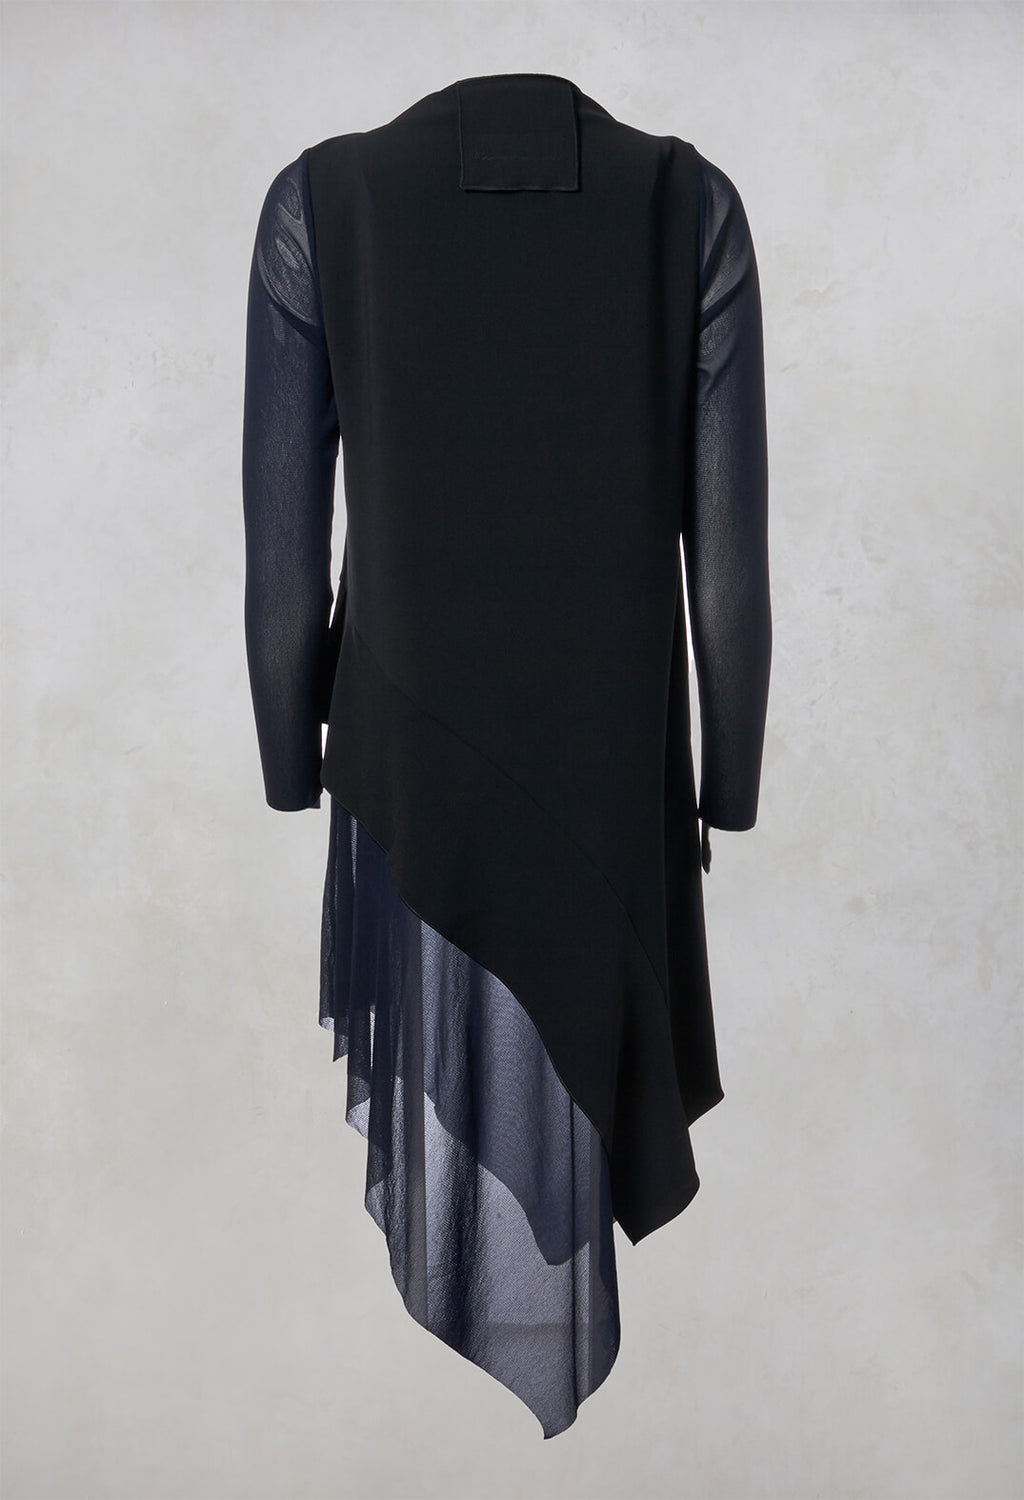 Handkerchief Dress in Black / Blue